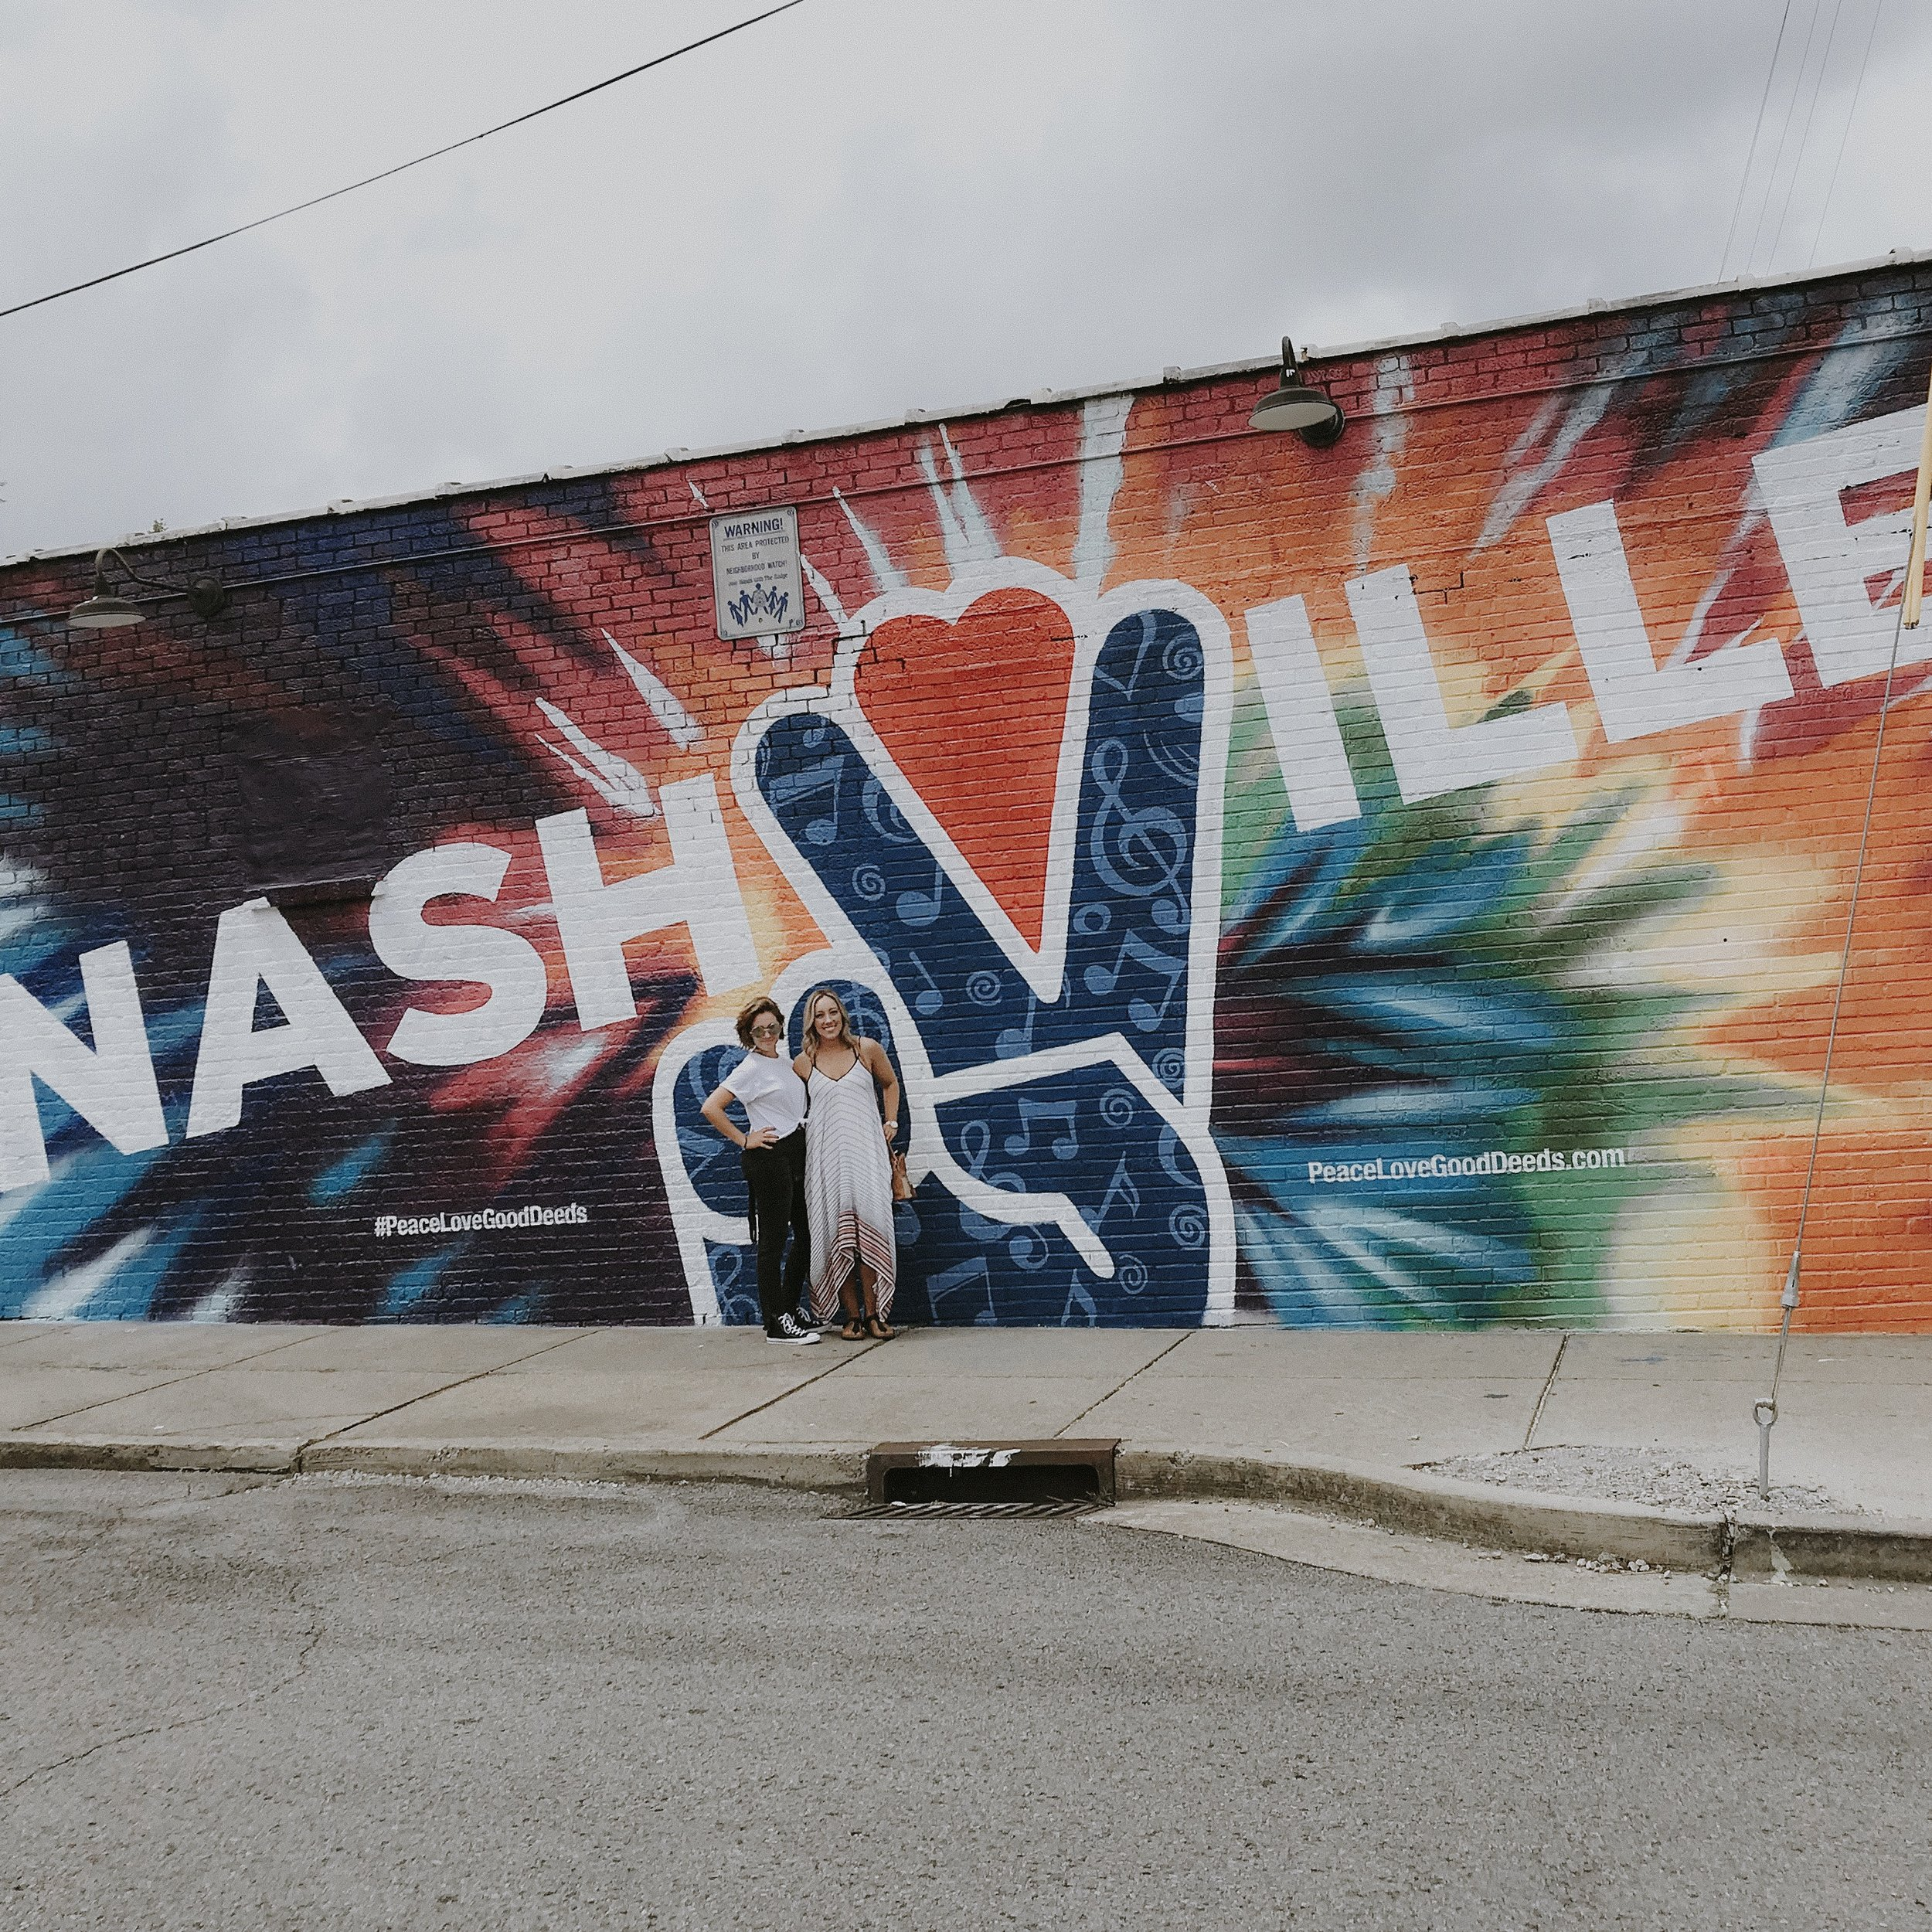 This fun wall is located in 12th South. The entire street is full of fun spots to take photo's, eat and shop.